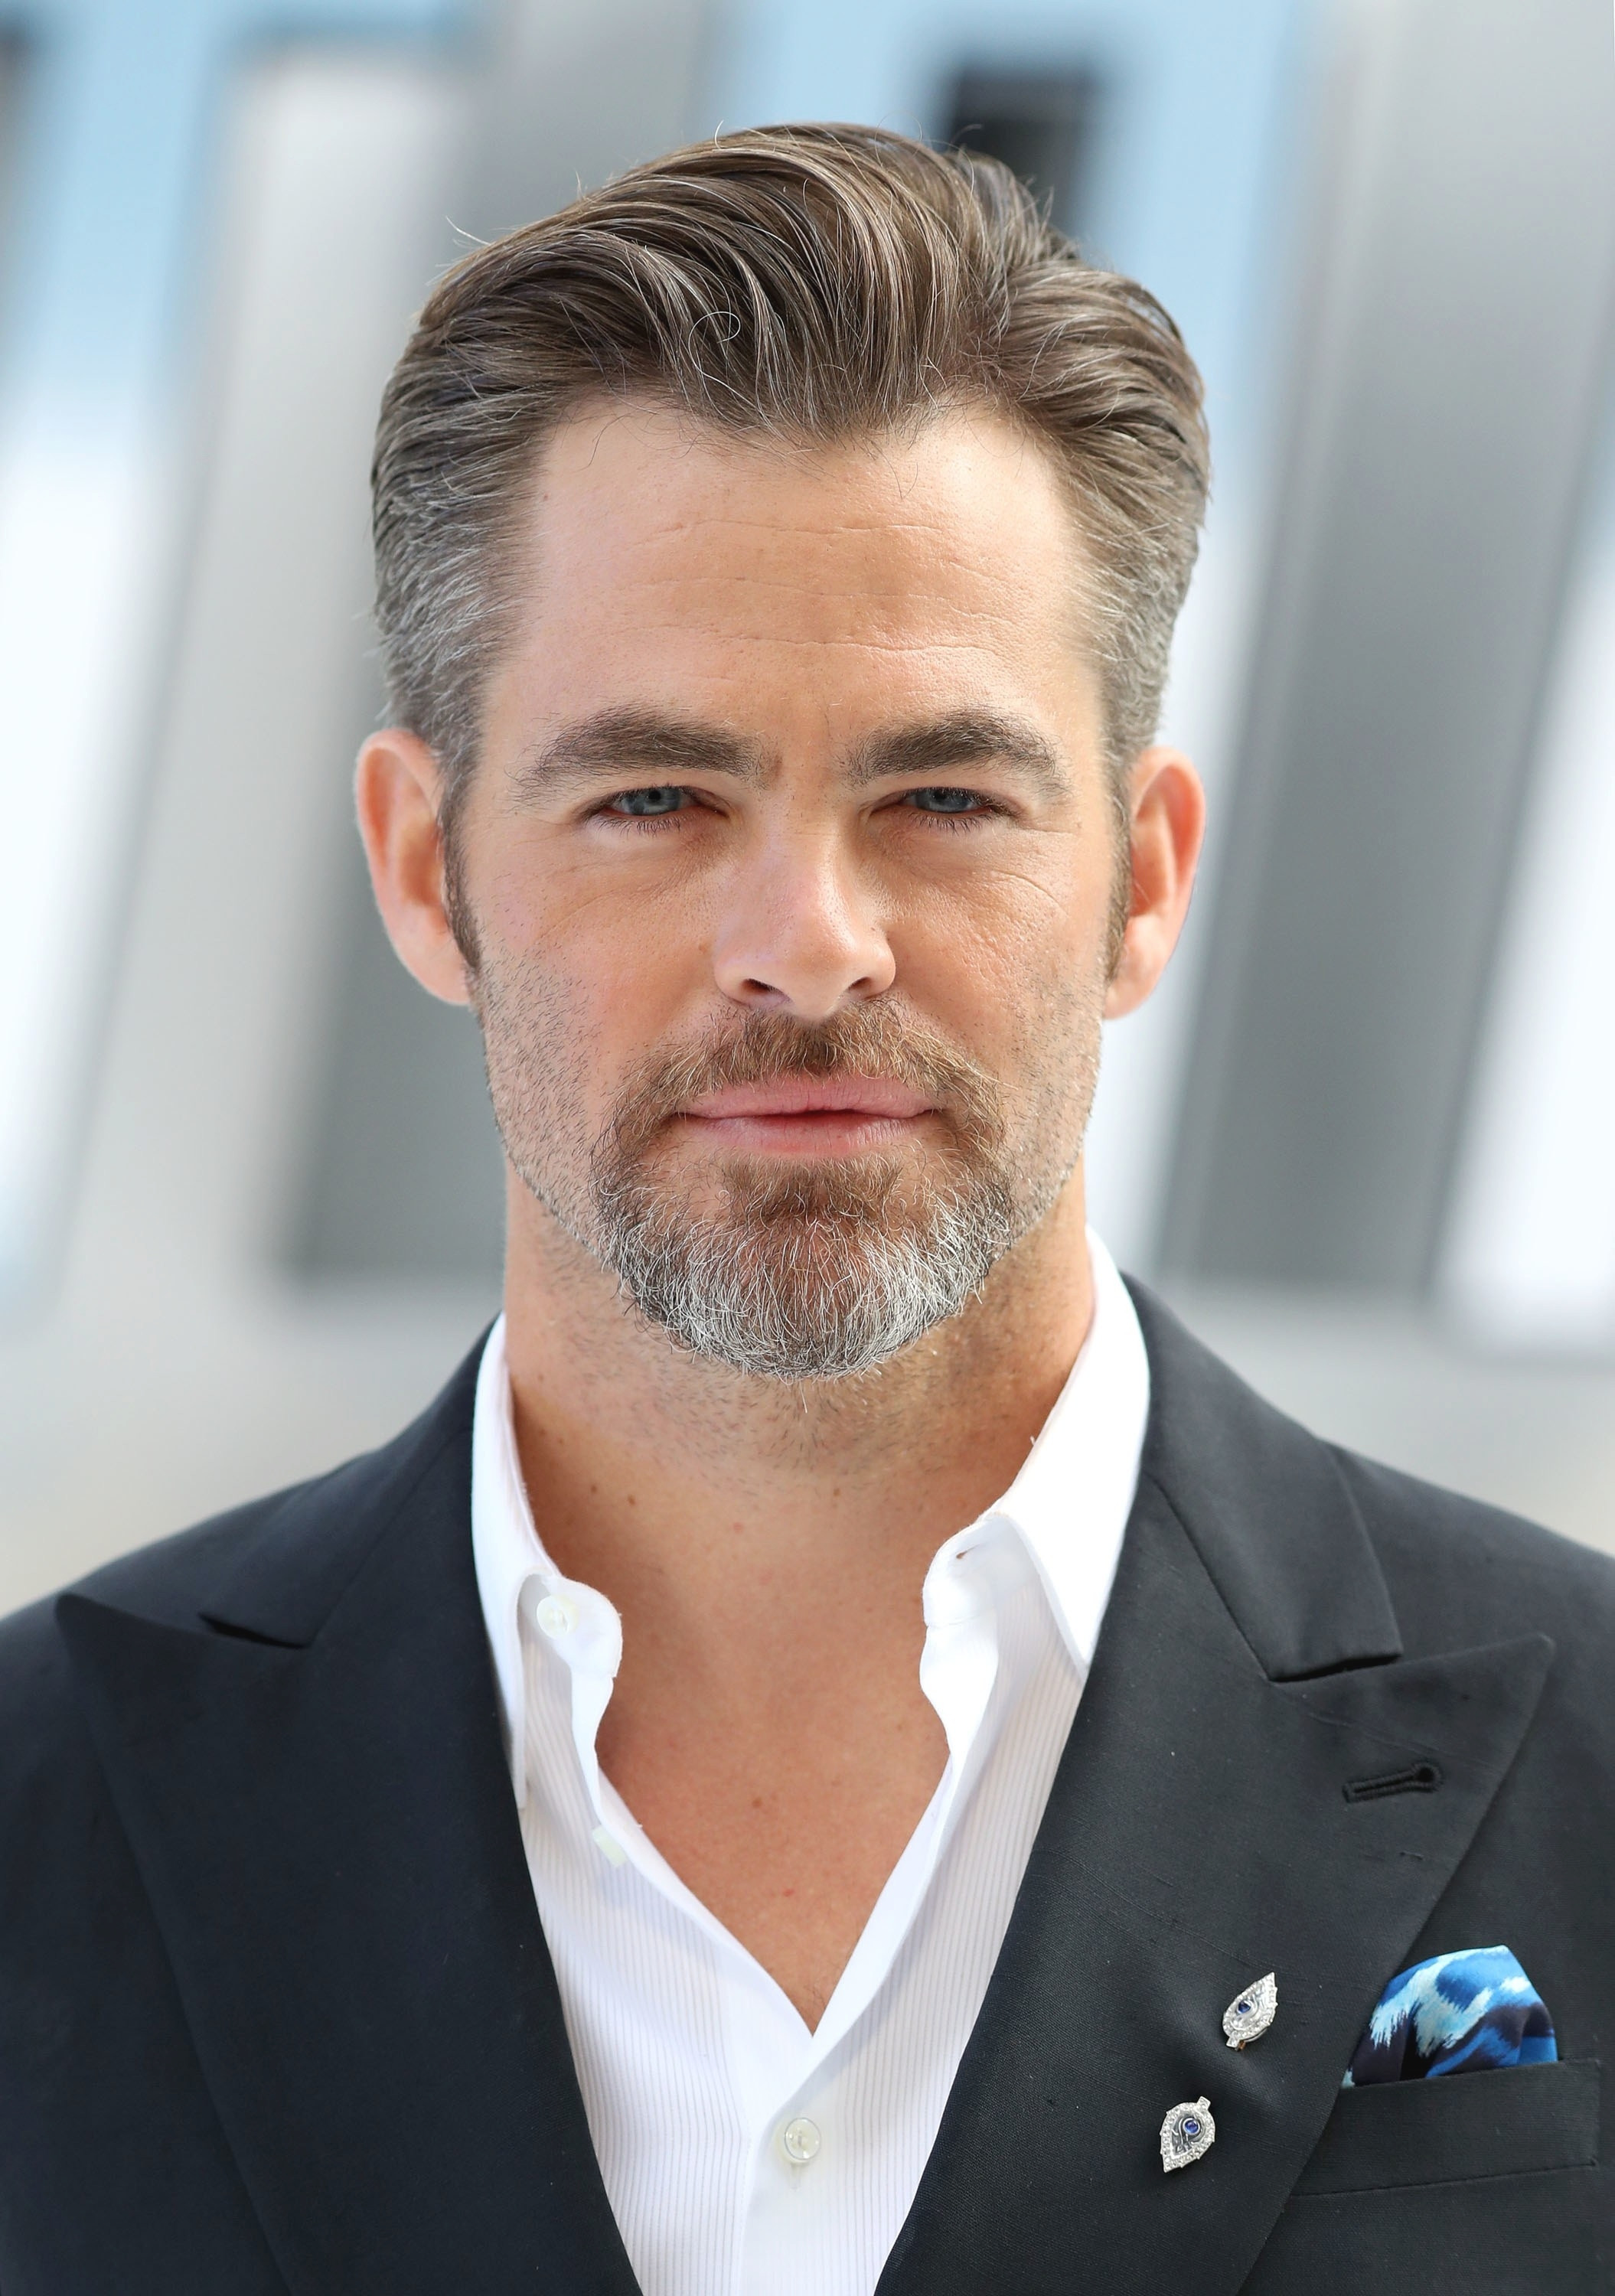 Malecelebrity Hairstyles  Male Celebrity Hairstyles